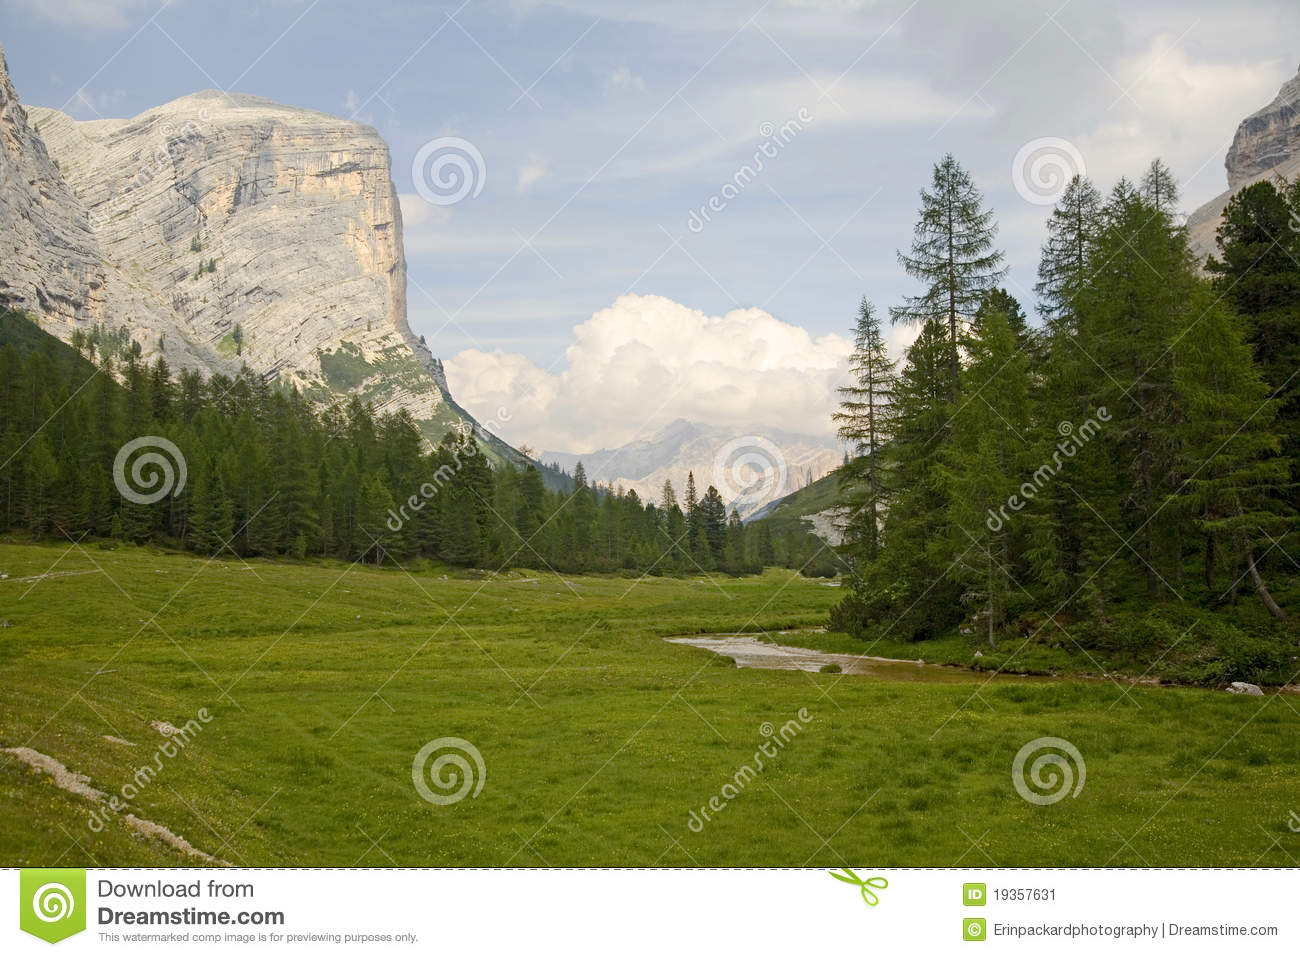 Towering Cliffs of the Dolomites